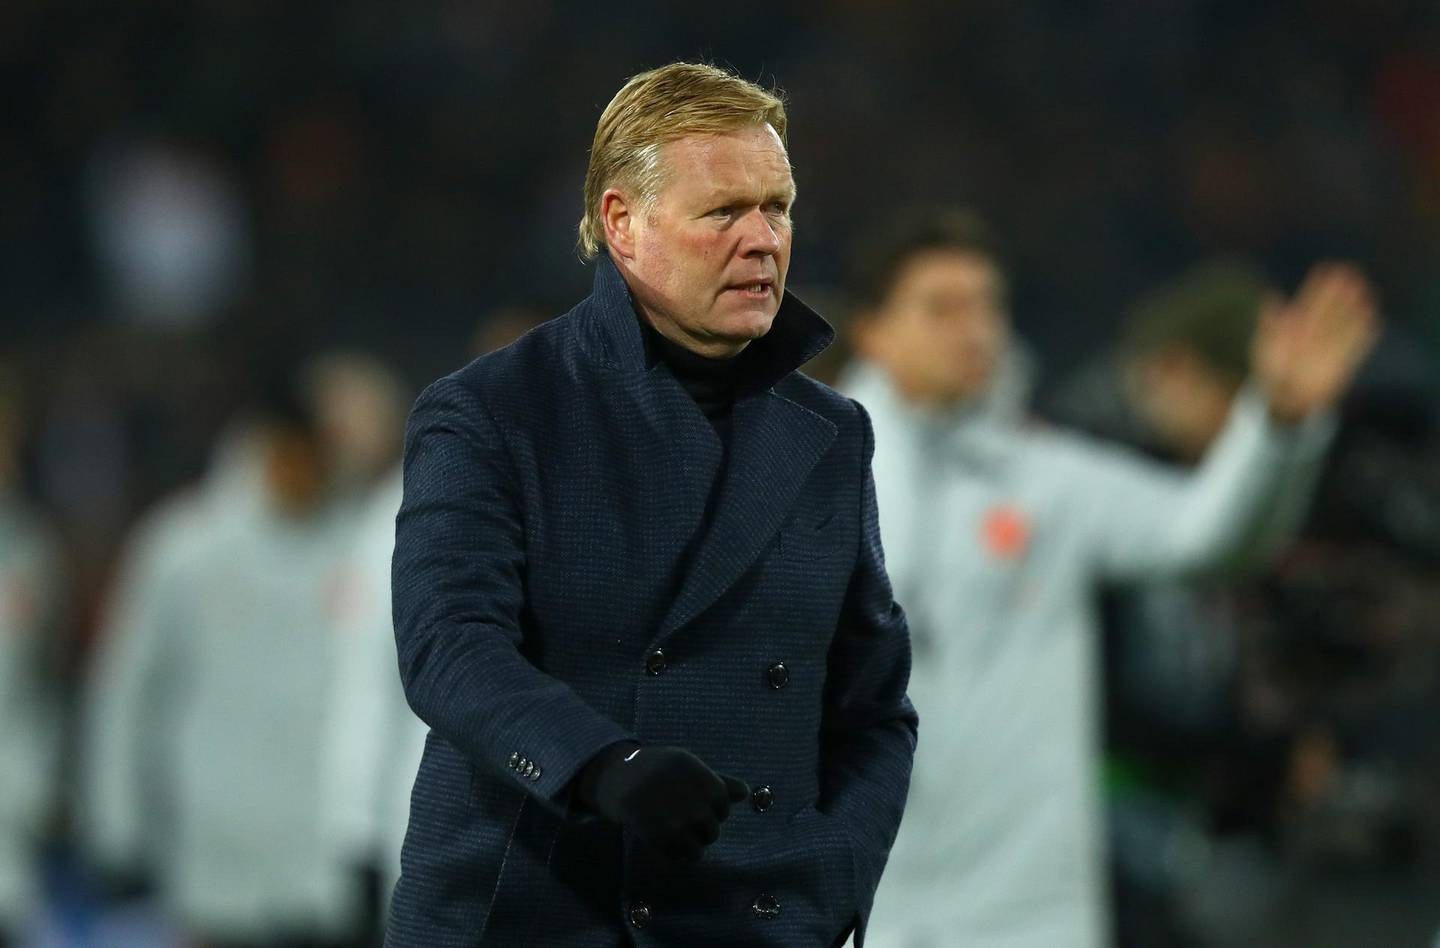 AMSTERDAM, NETHERLANDS - NOVEMBER 16:  Ronald Koeman, Manager of the Netherlands looks on during the UEFA Nations League Group A match between Netherlands and France at the Stadion Feijenoord on November 16, 2018 in Amsterdam, Netherlands.  (Photo by Dean Mouhtaropoulos/Getty Images)